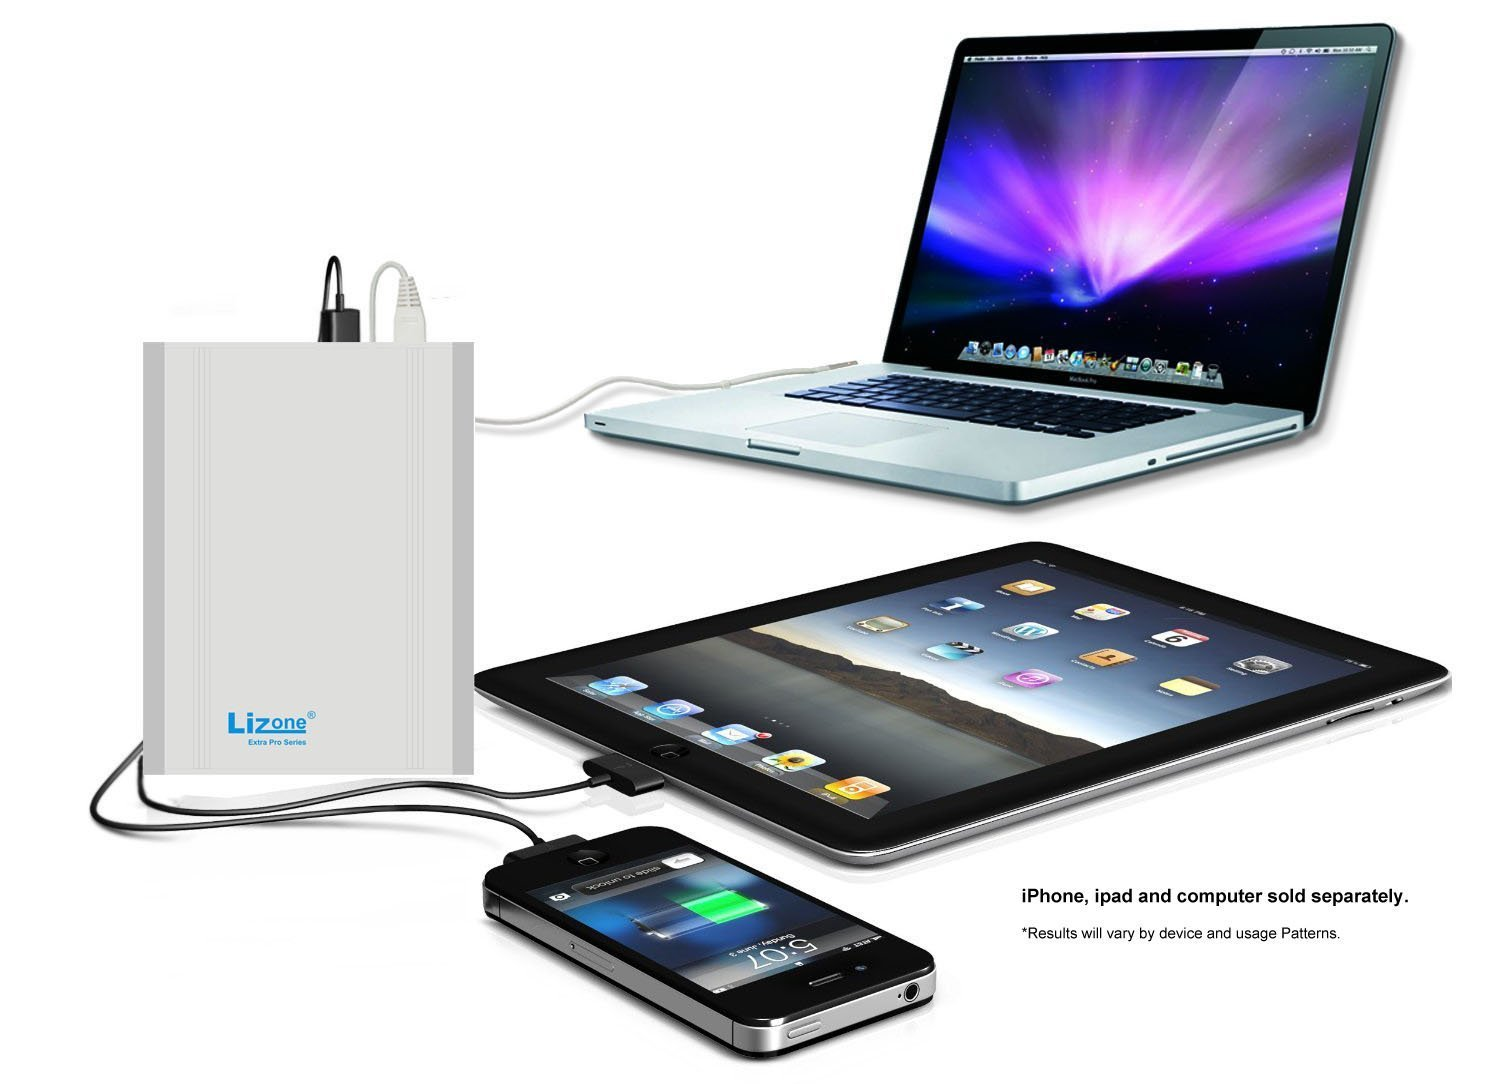 Lizone Extra Pro 40000mAh External Battery Charger for Apple MacBook Pro Air...HP and Lenovo...USB Power Bank Charger for Apple iPad iPhone; Samsung MOTO LG HTC...Aluminum UniBody Silver 40000mAh by Lizone